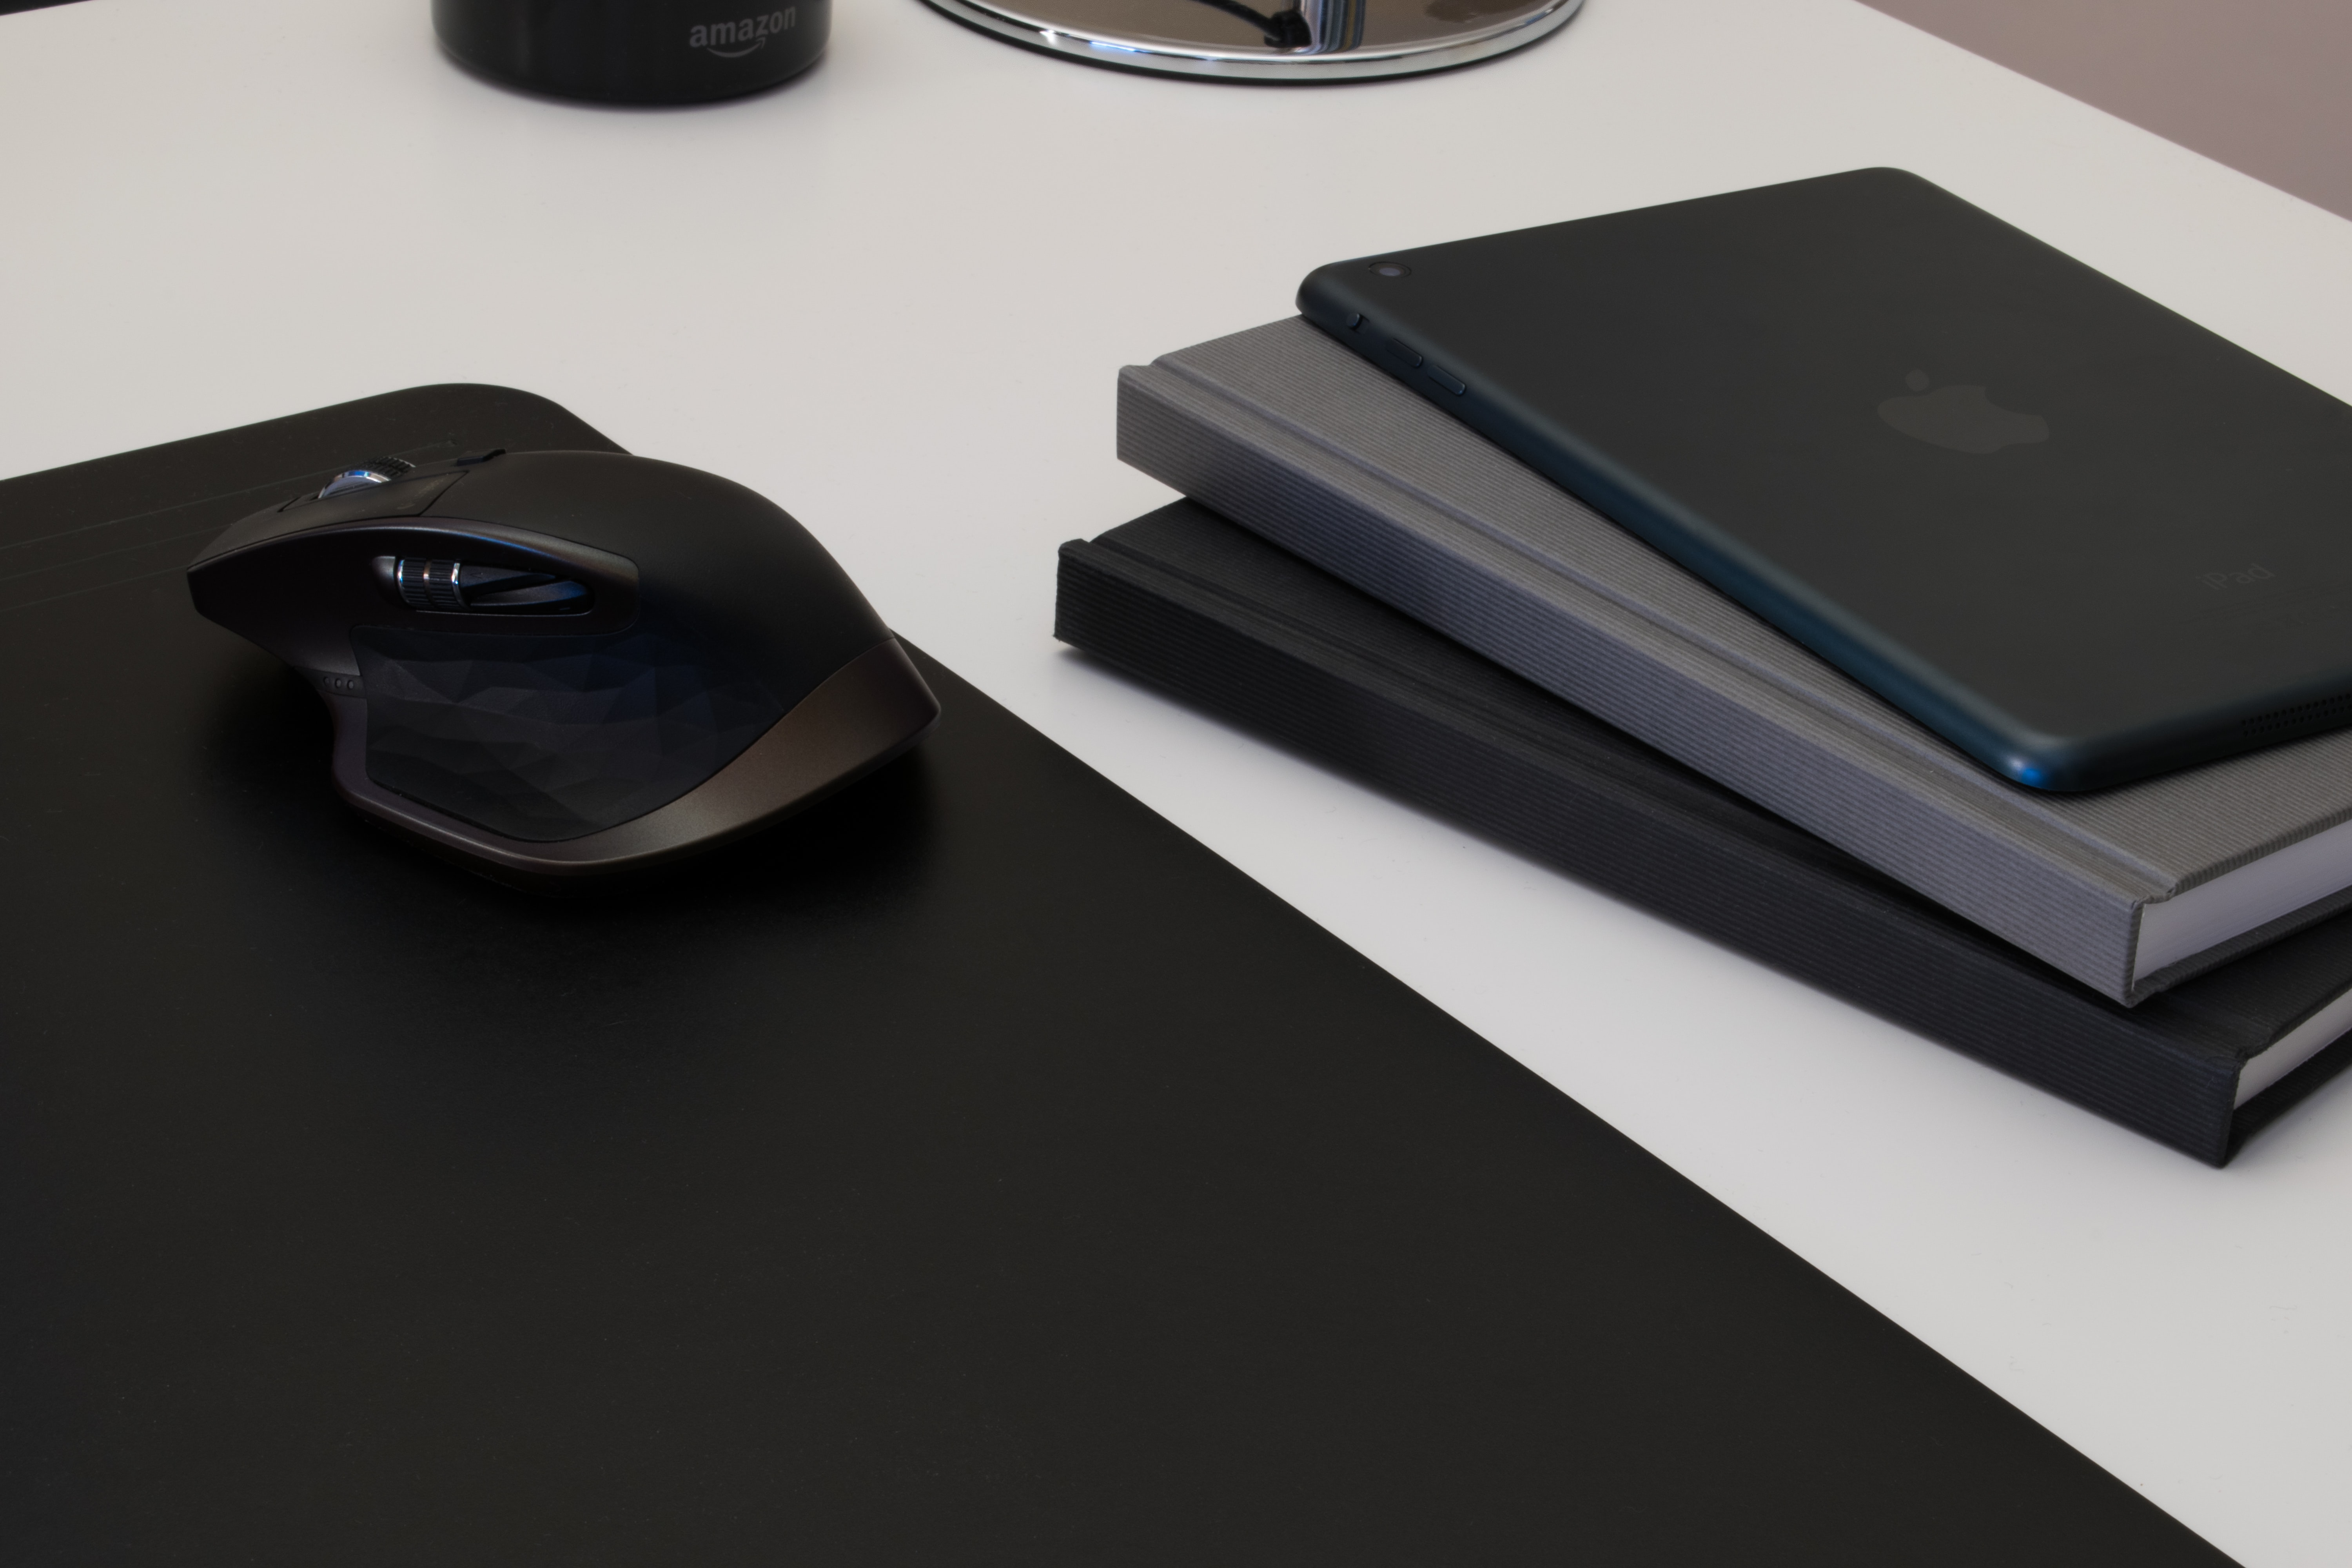 black and gray cordless mouse on black mousepad near black and gray books